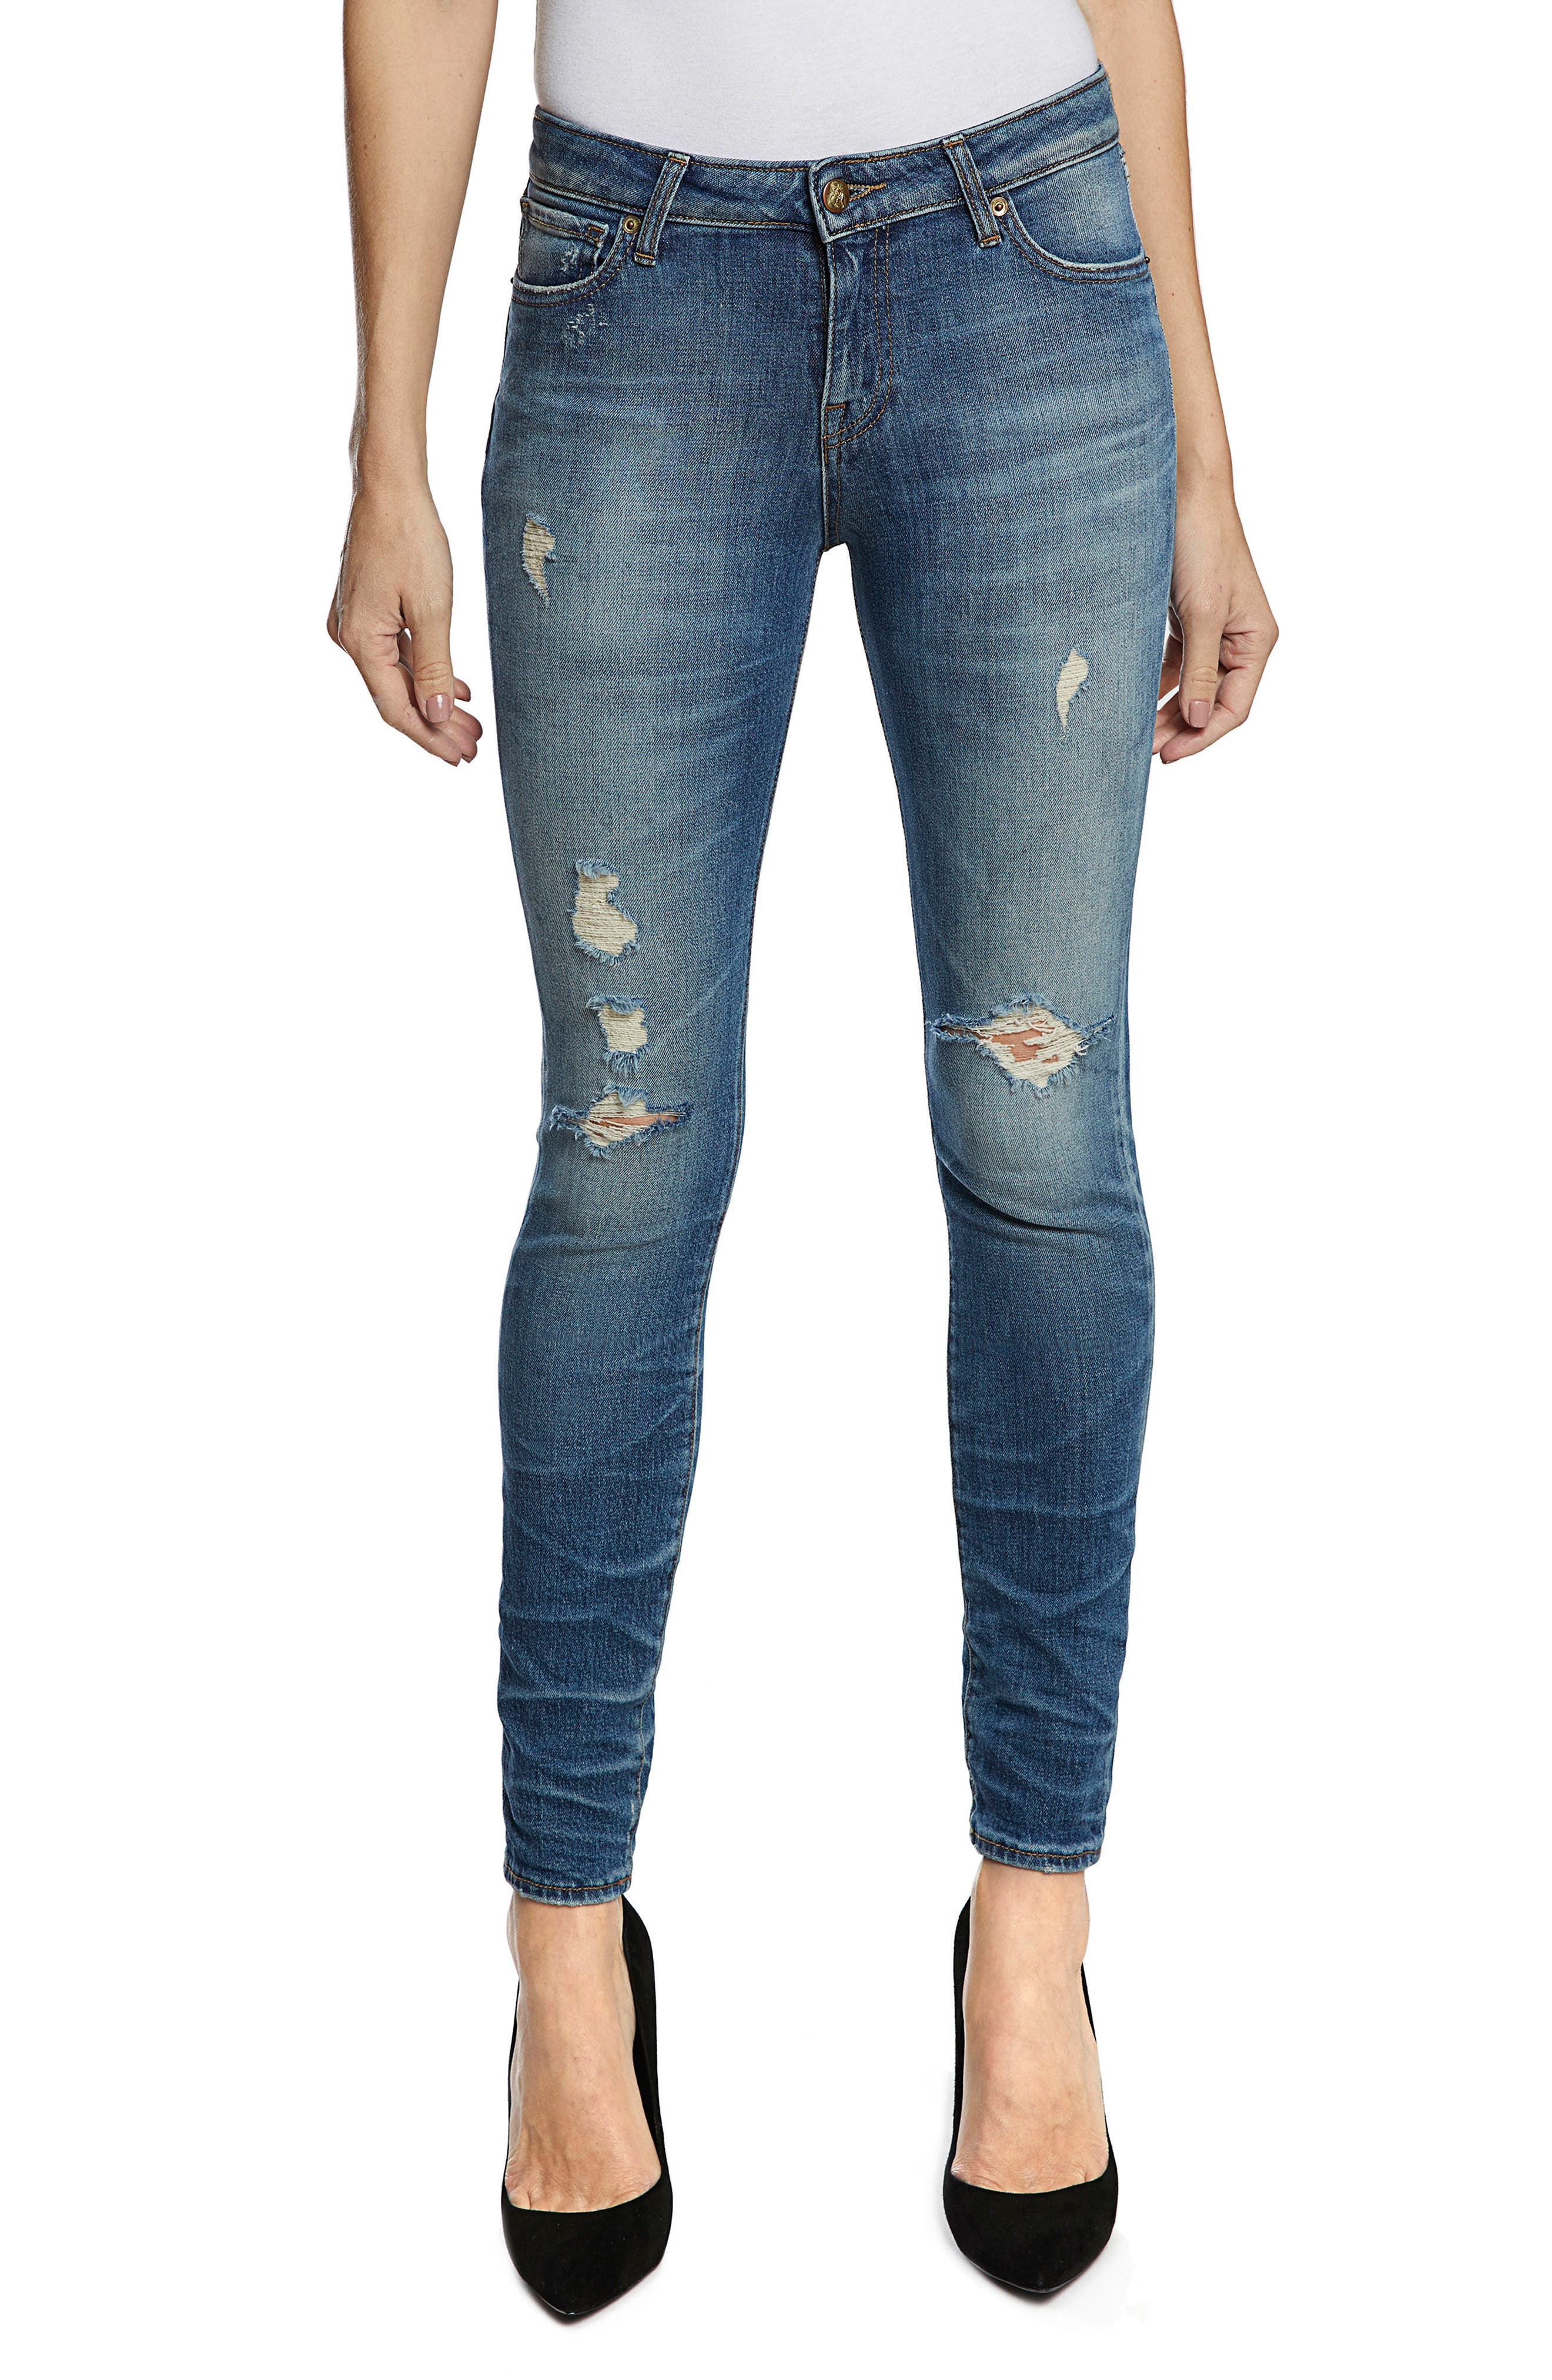 Camaro Ankle Skinny Jeans,                             Main thumbnail 1, color,                             490